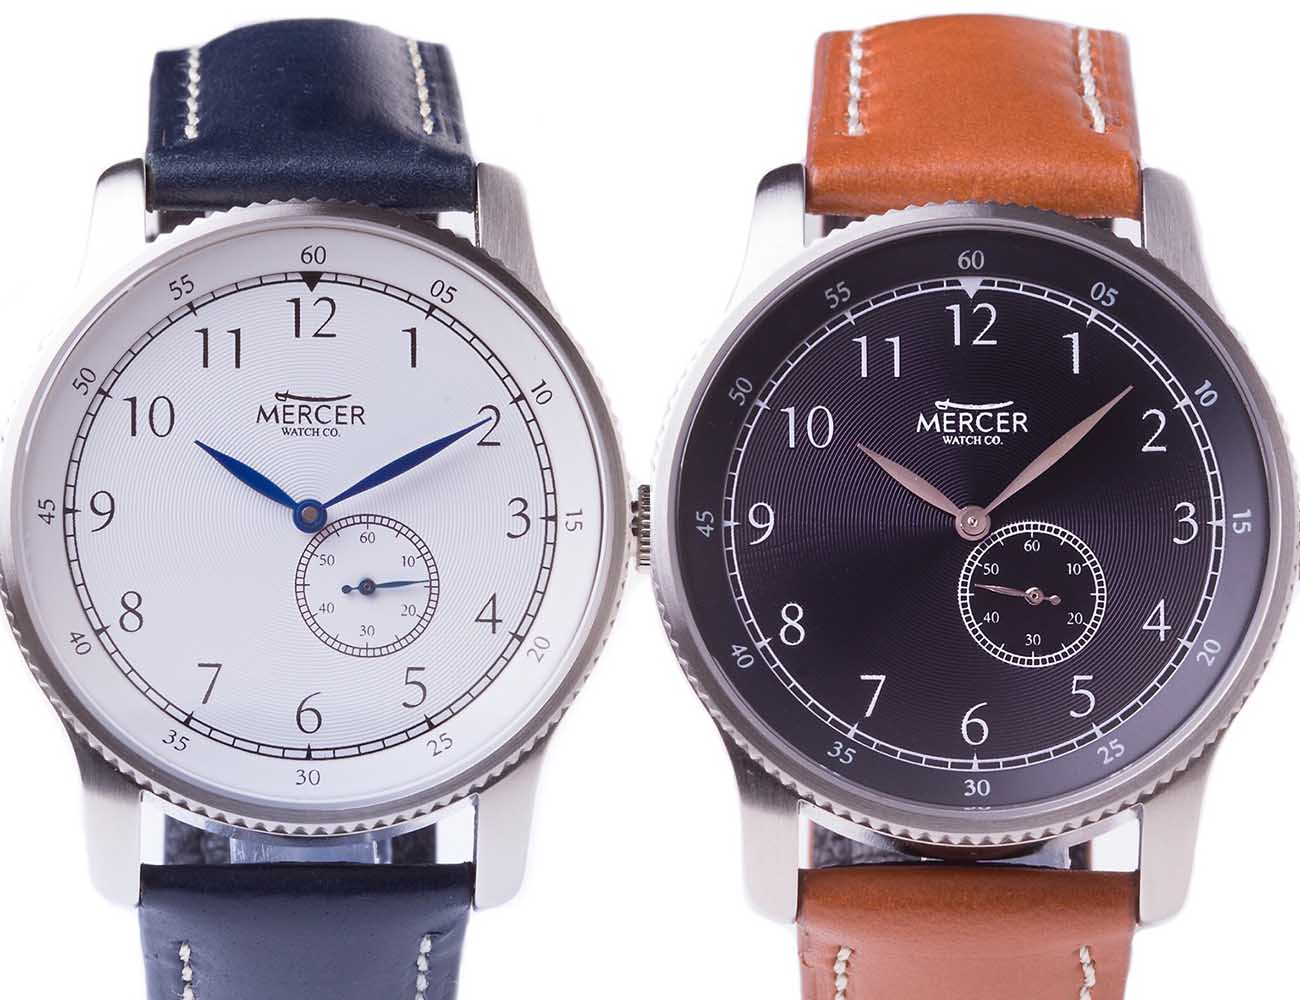 The Privateer And Voyager Automatic Watches